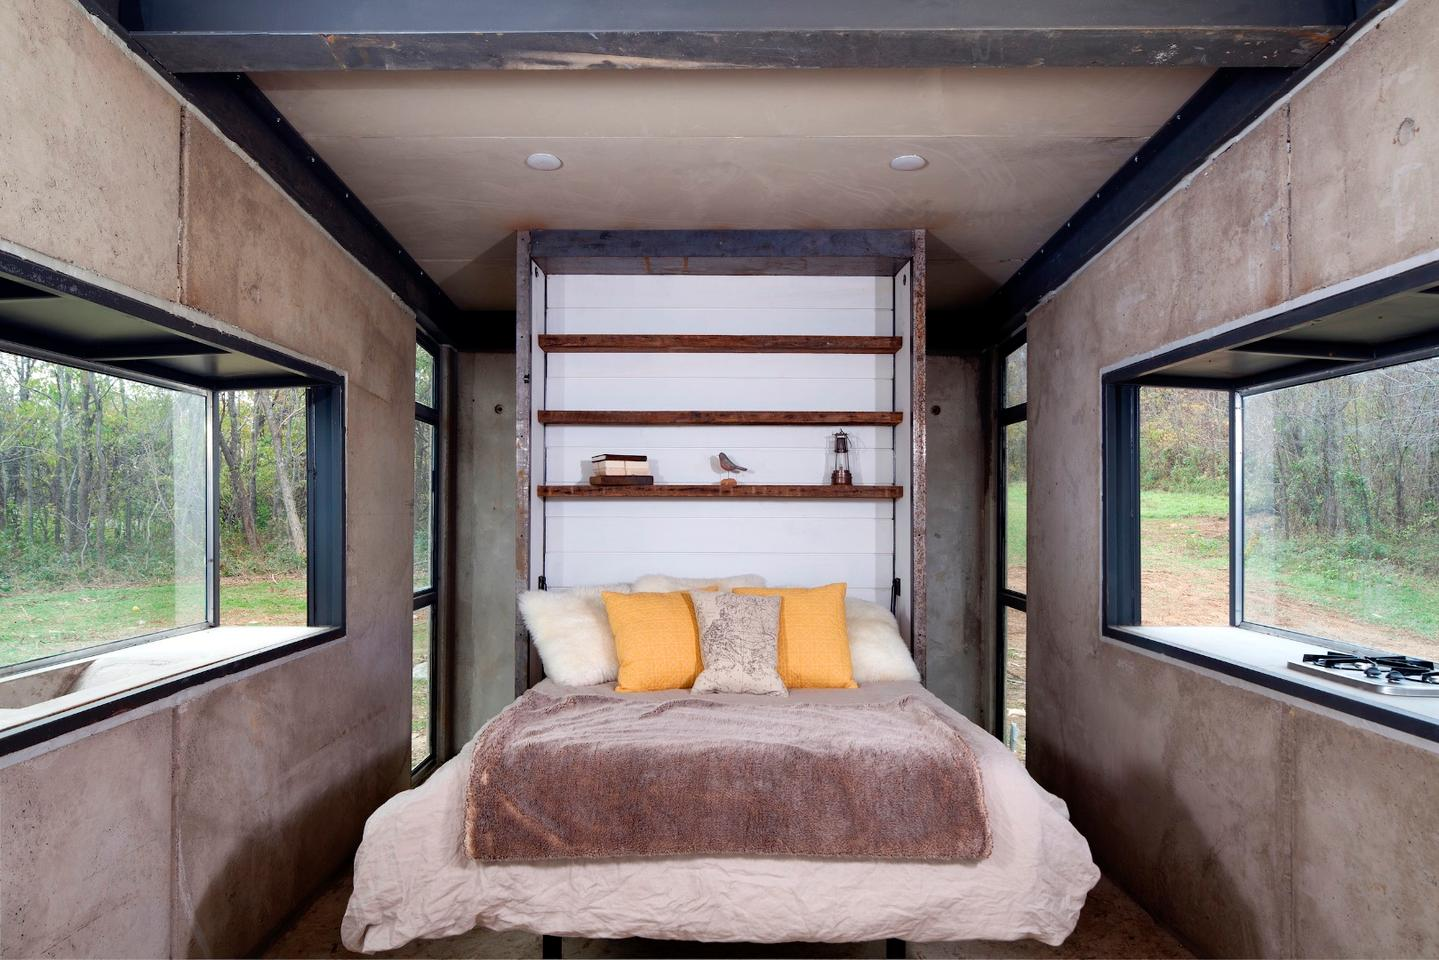 The Lost Whisky Concrete Cabin has a total floorspace of 160 sq ft (14.8 sq m)